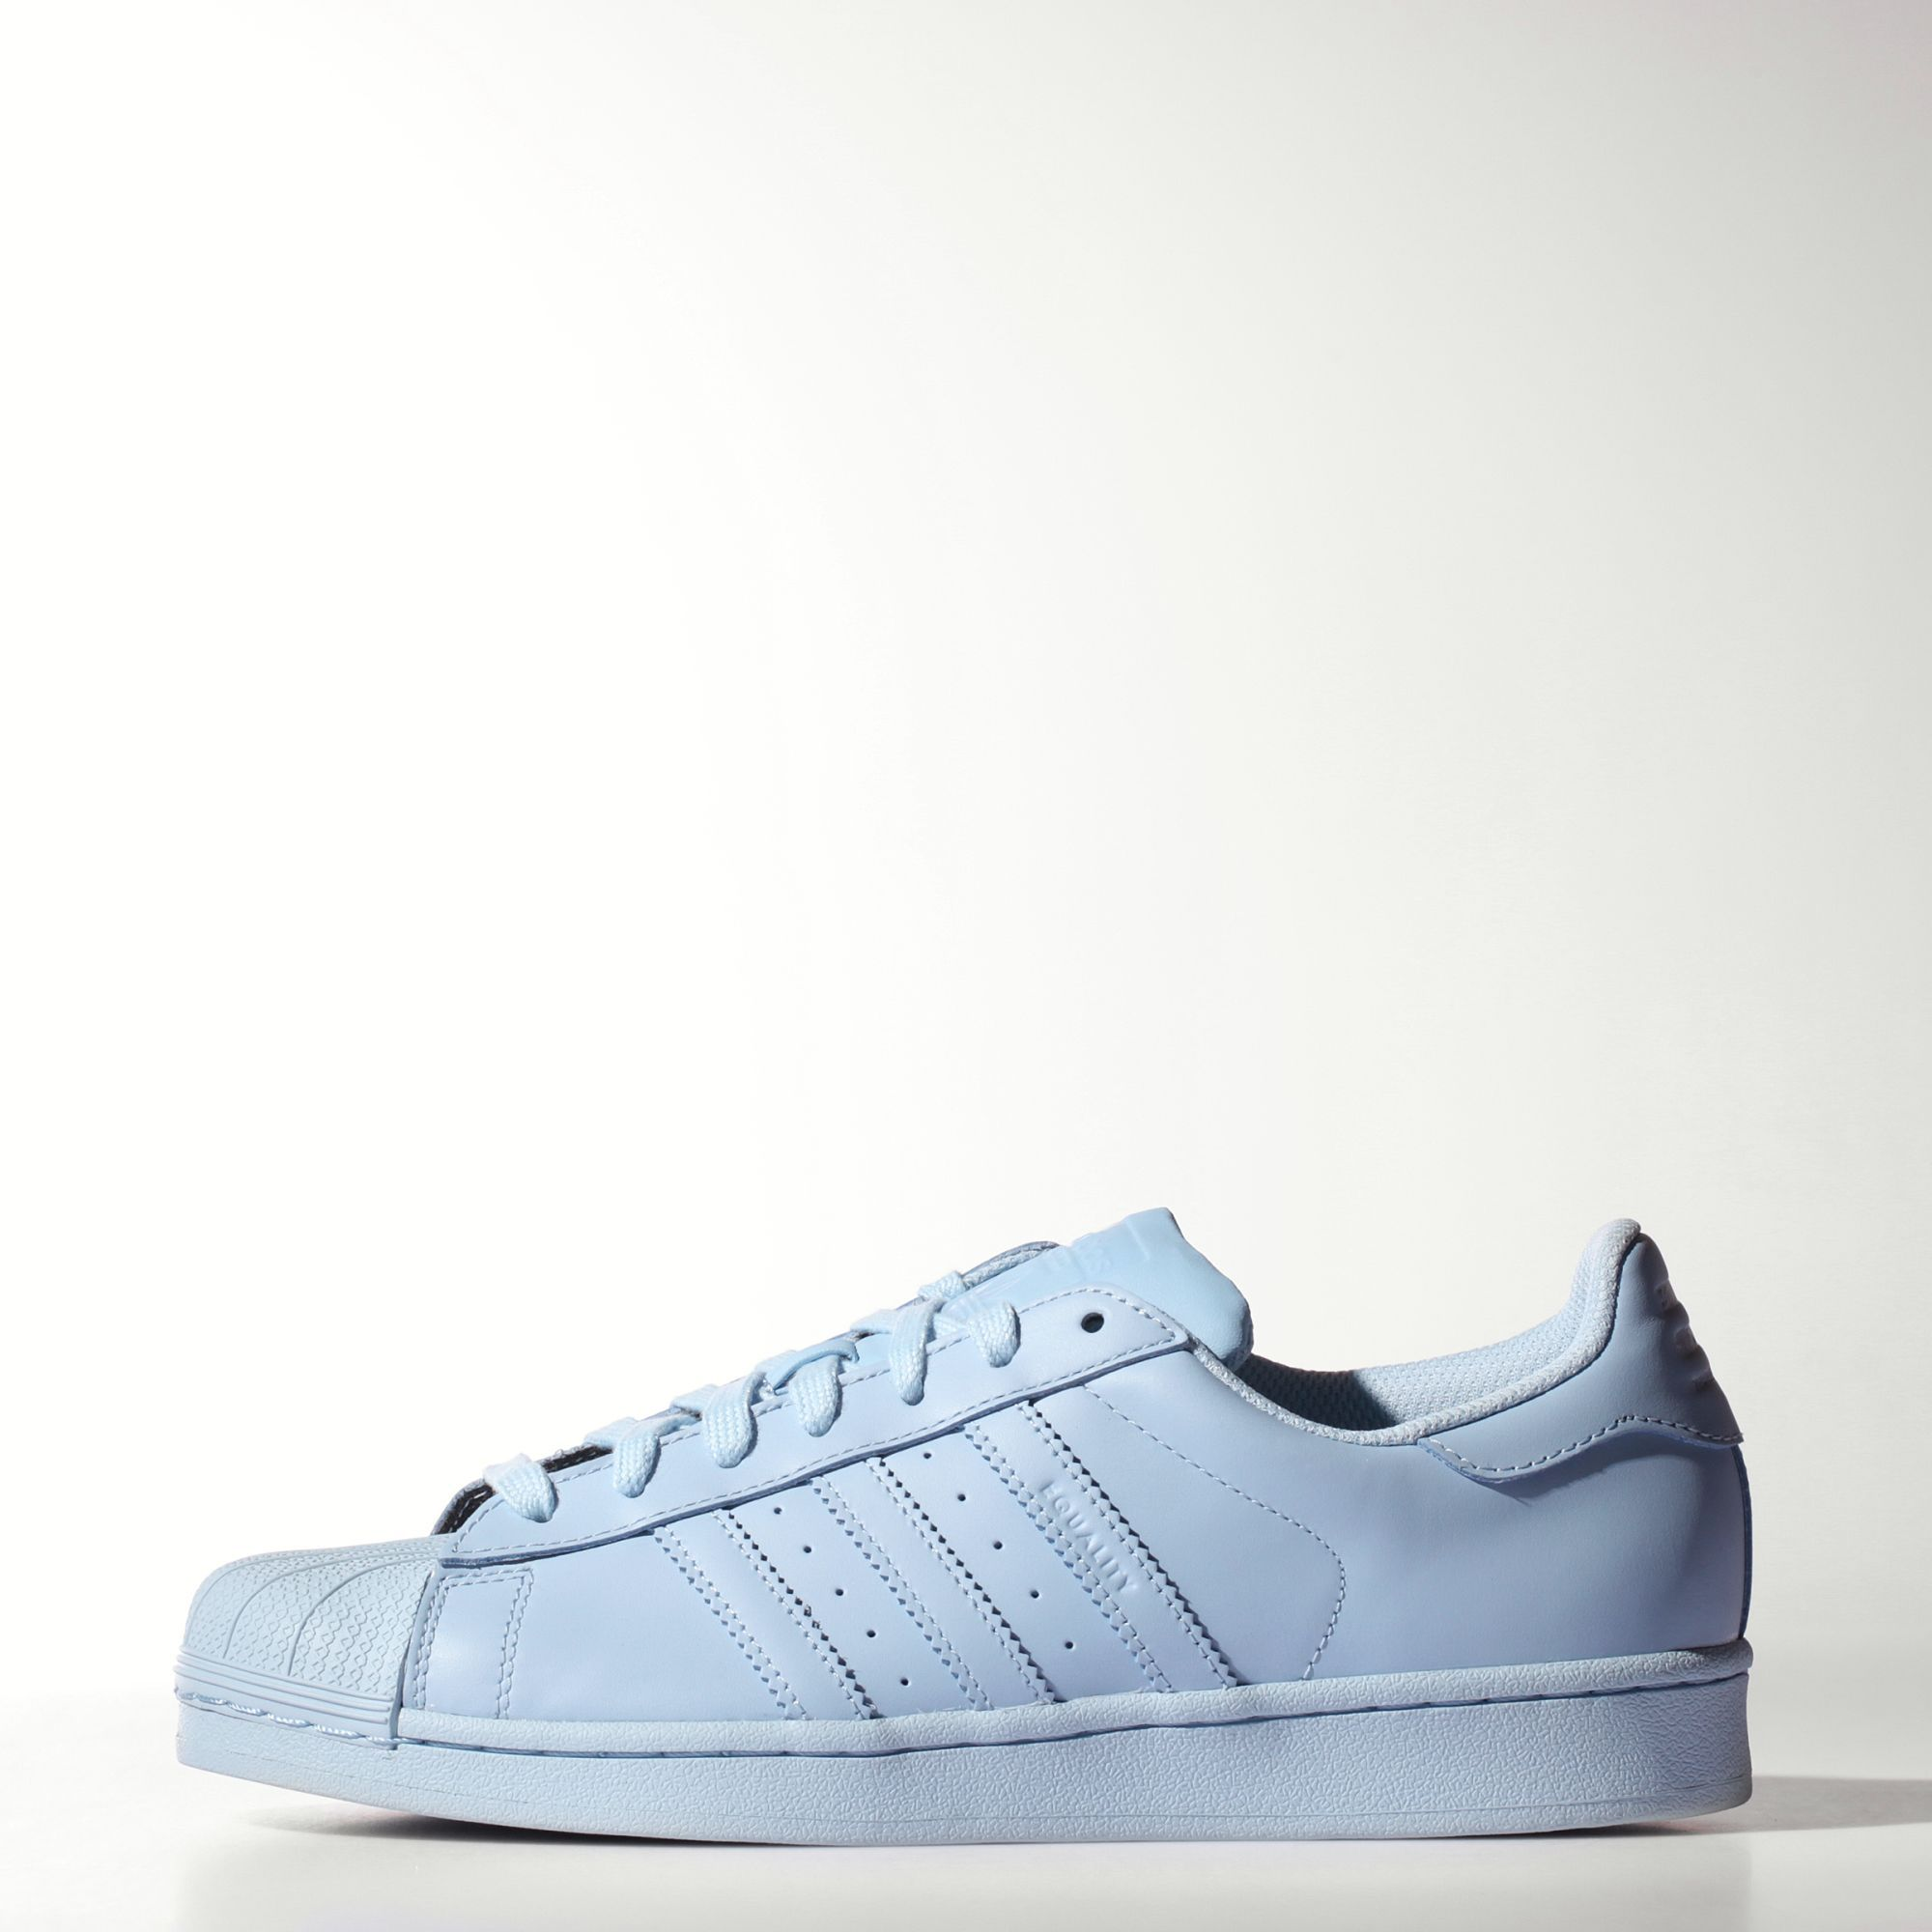 adidas superstar celeste